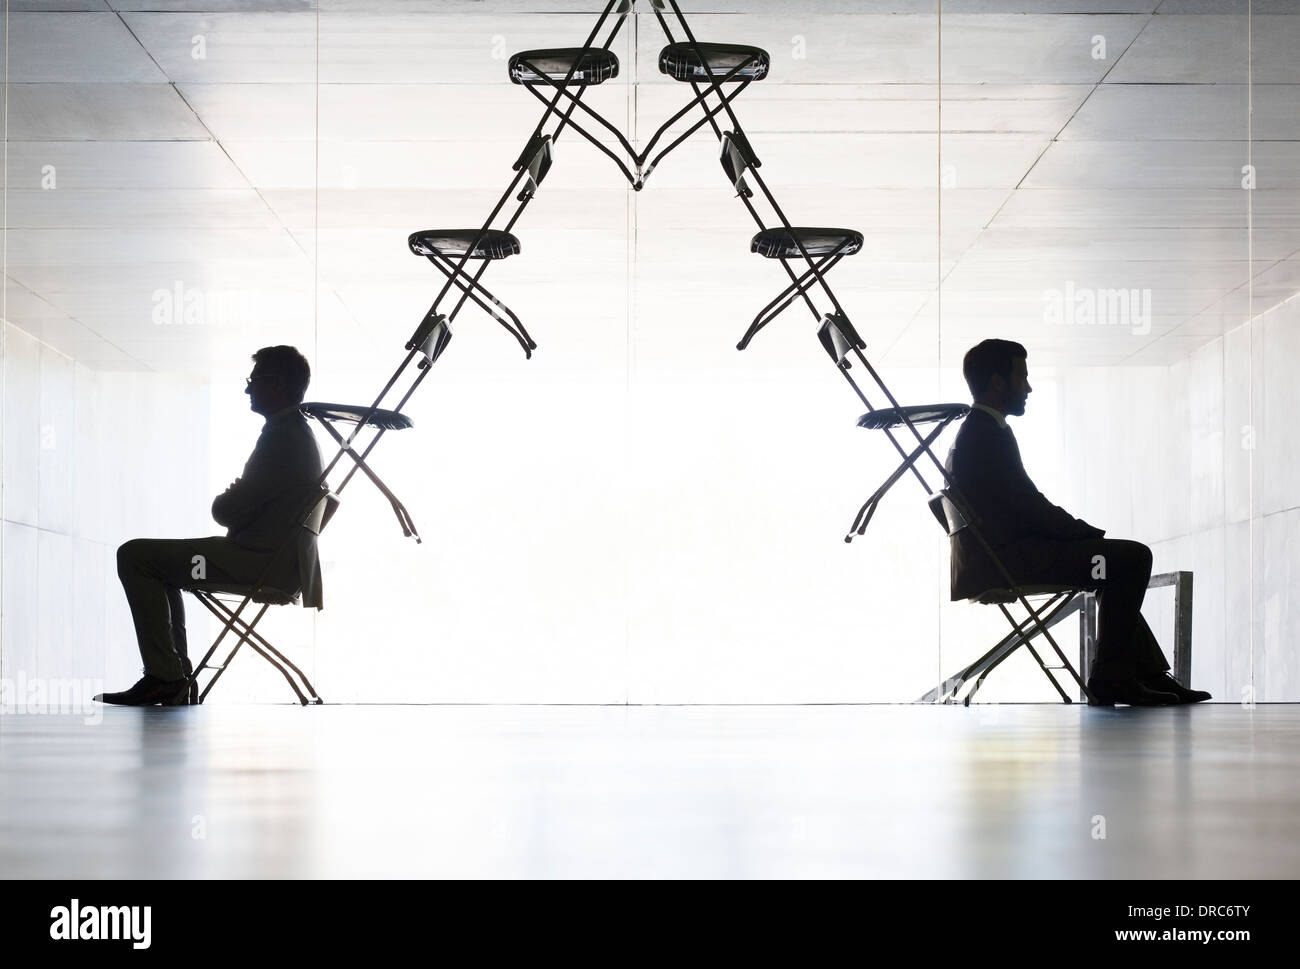 Businessmen sitting at opposite ends of office chair installation art - Stock Image